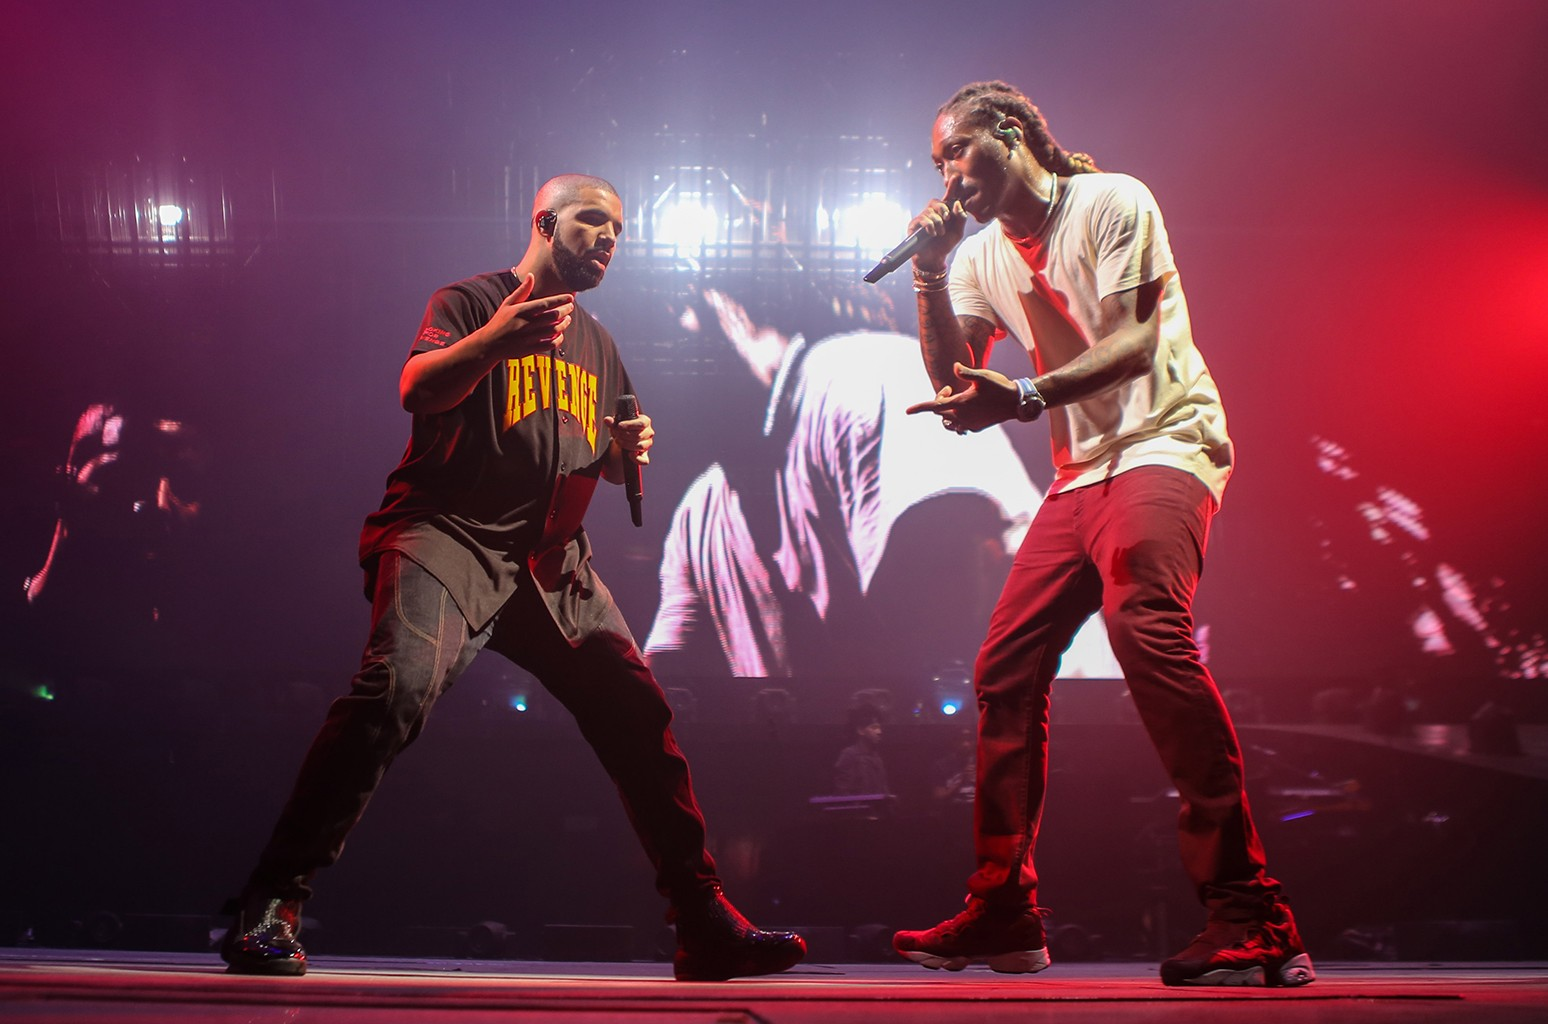 Drake and Future perform during The Summer Sixteen Tour